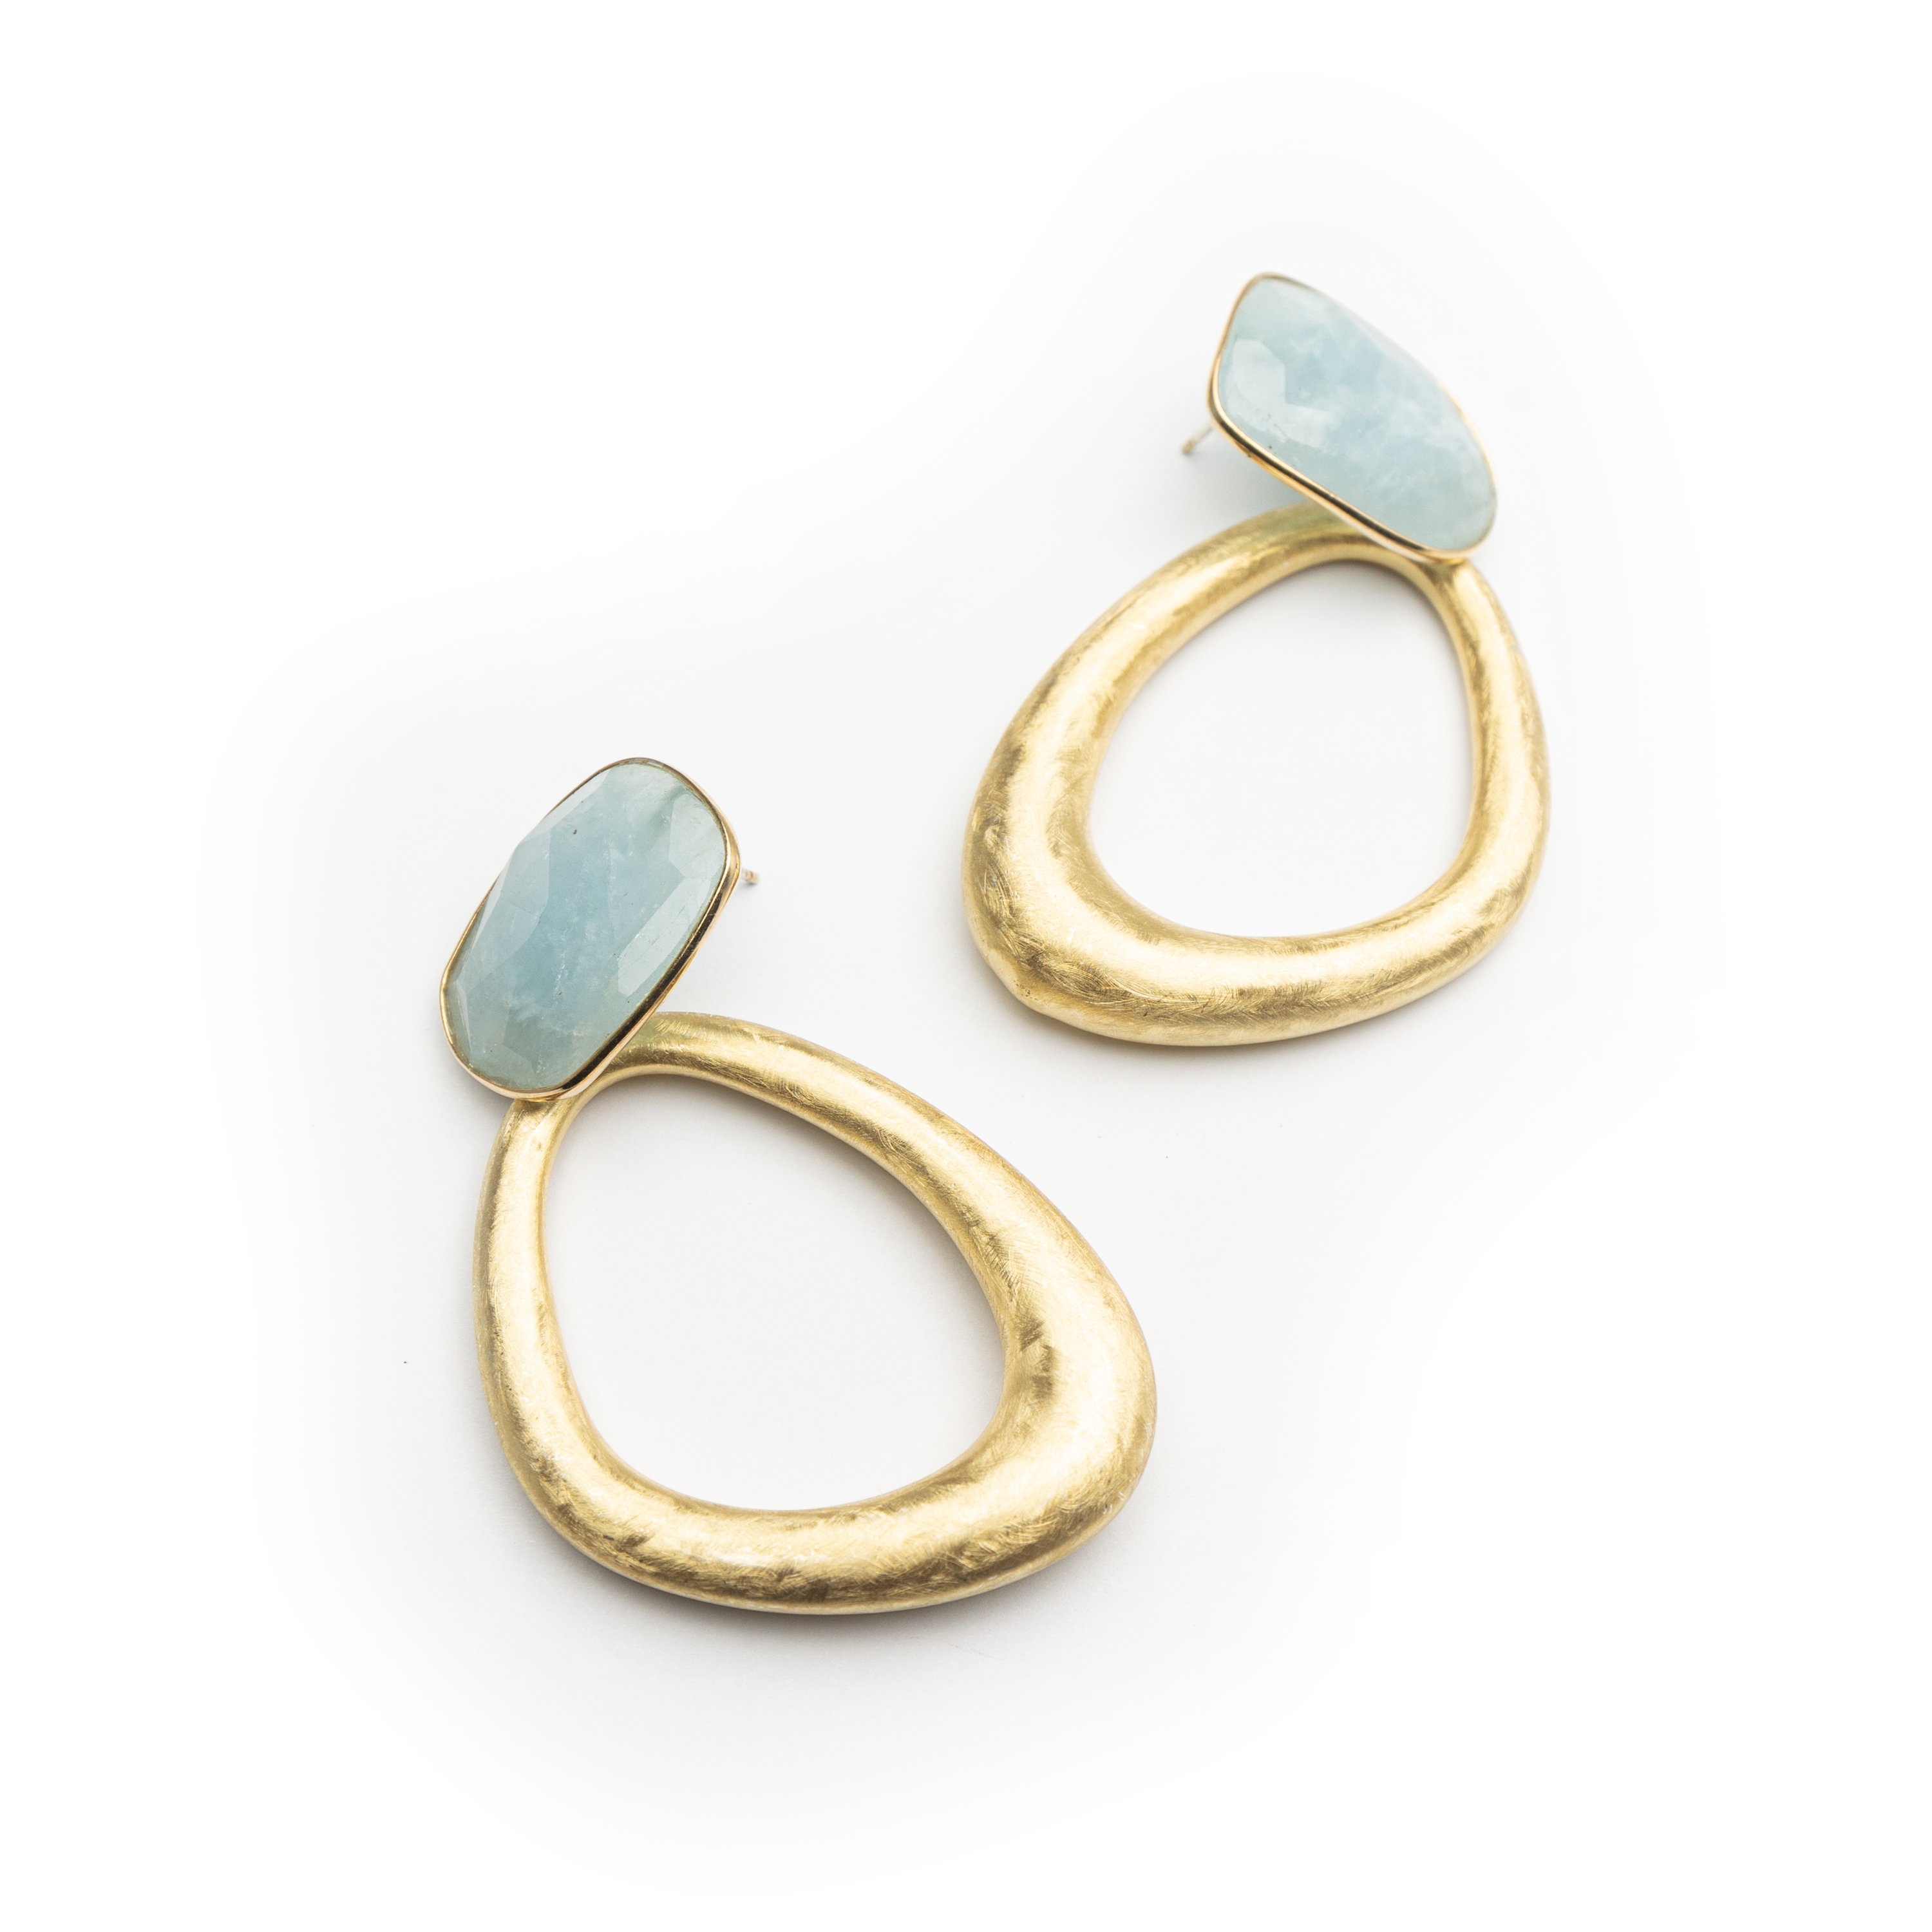 Silver 925 ,yellow Gold Plated Natural Stone Chunky Earrings.